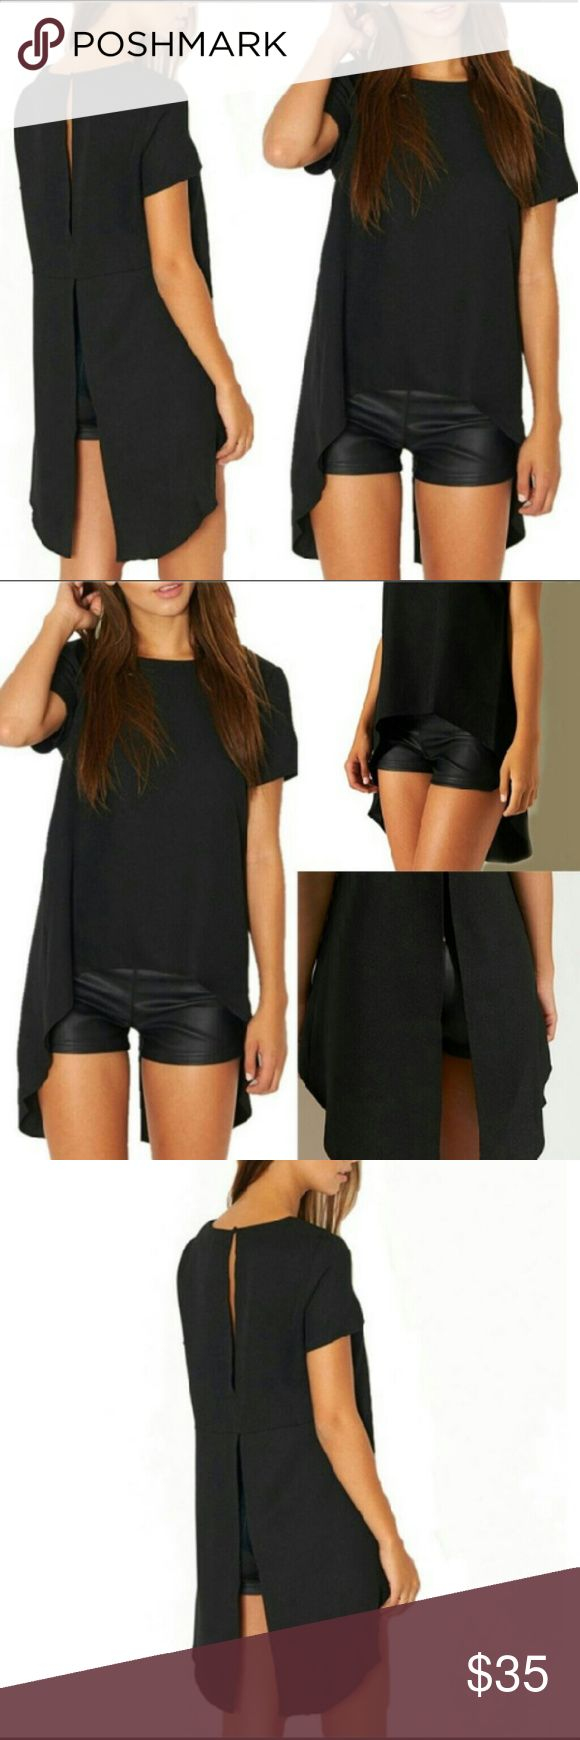 Solid Black Irregular High-Low Back split Tee Black T-shirt High -Low Irregualr Hem Open split back. New in package. Boutique  Tops